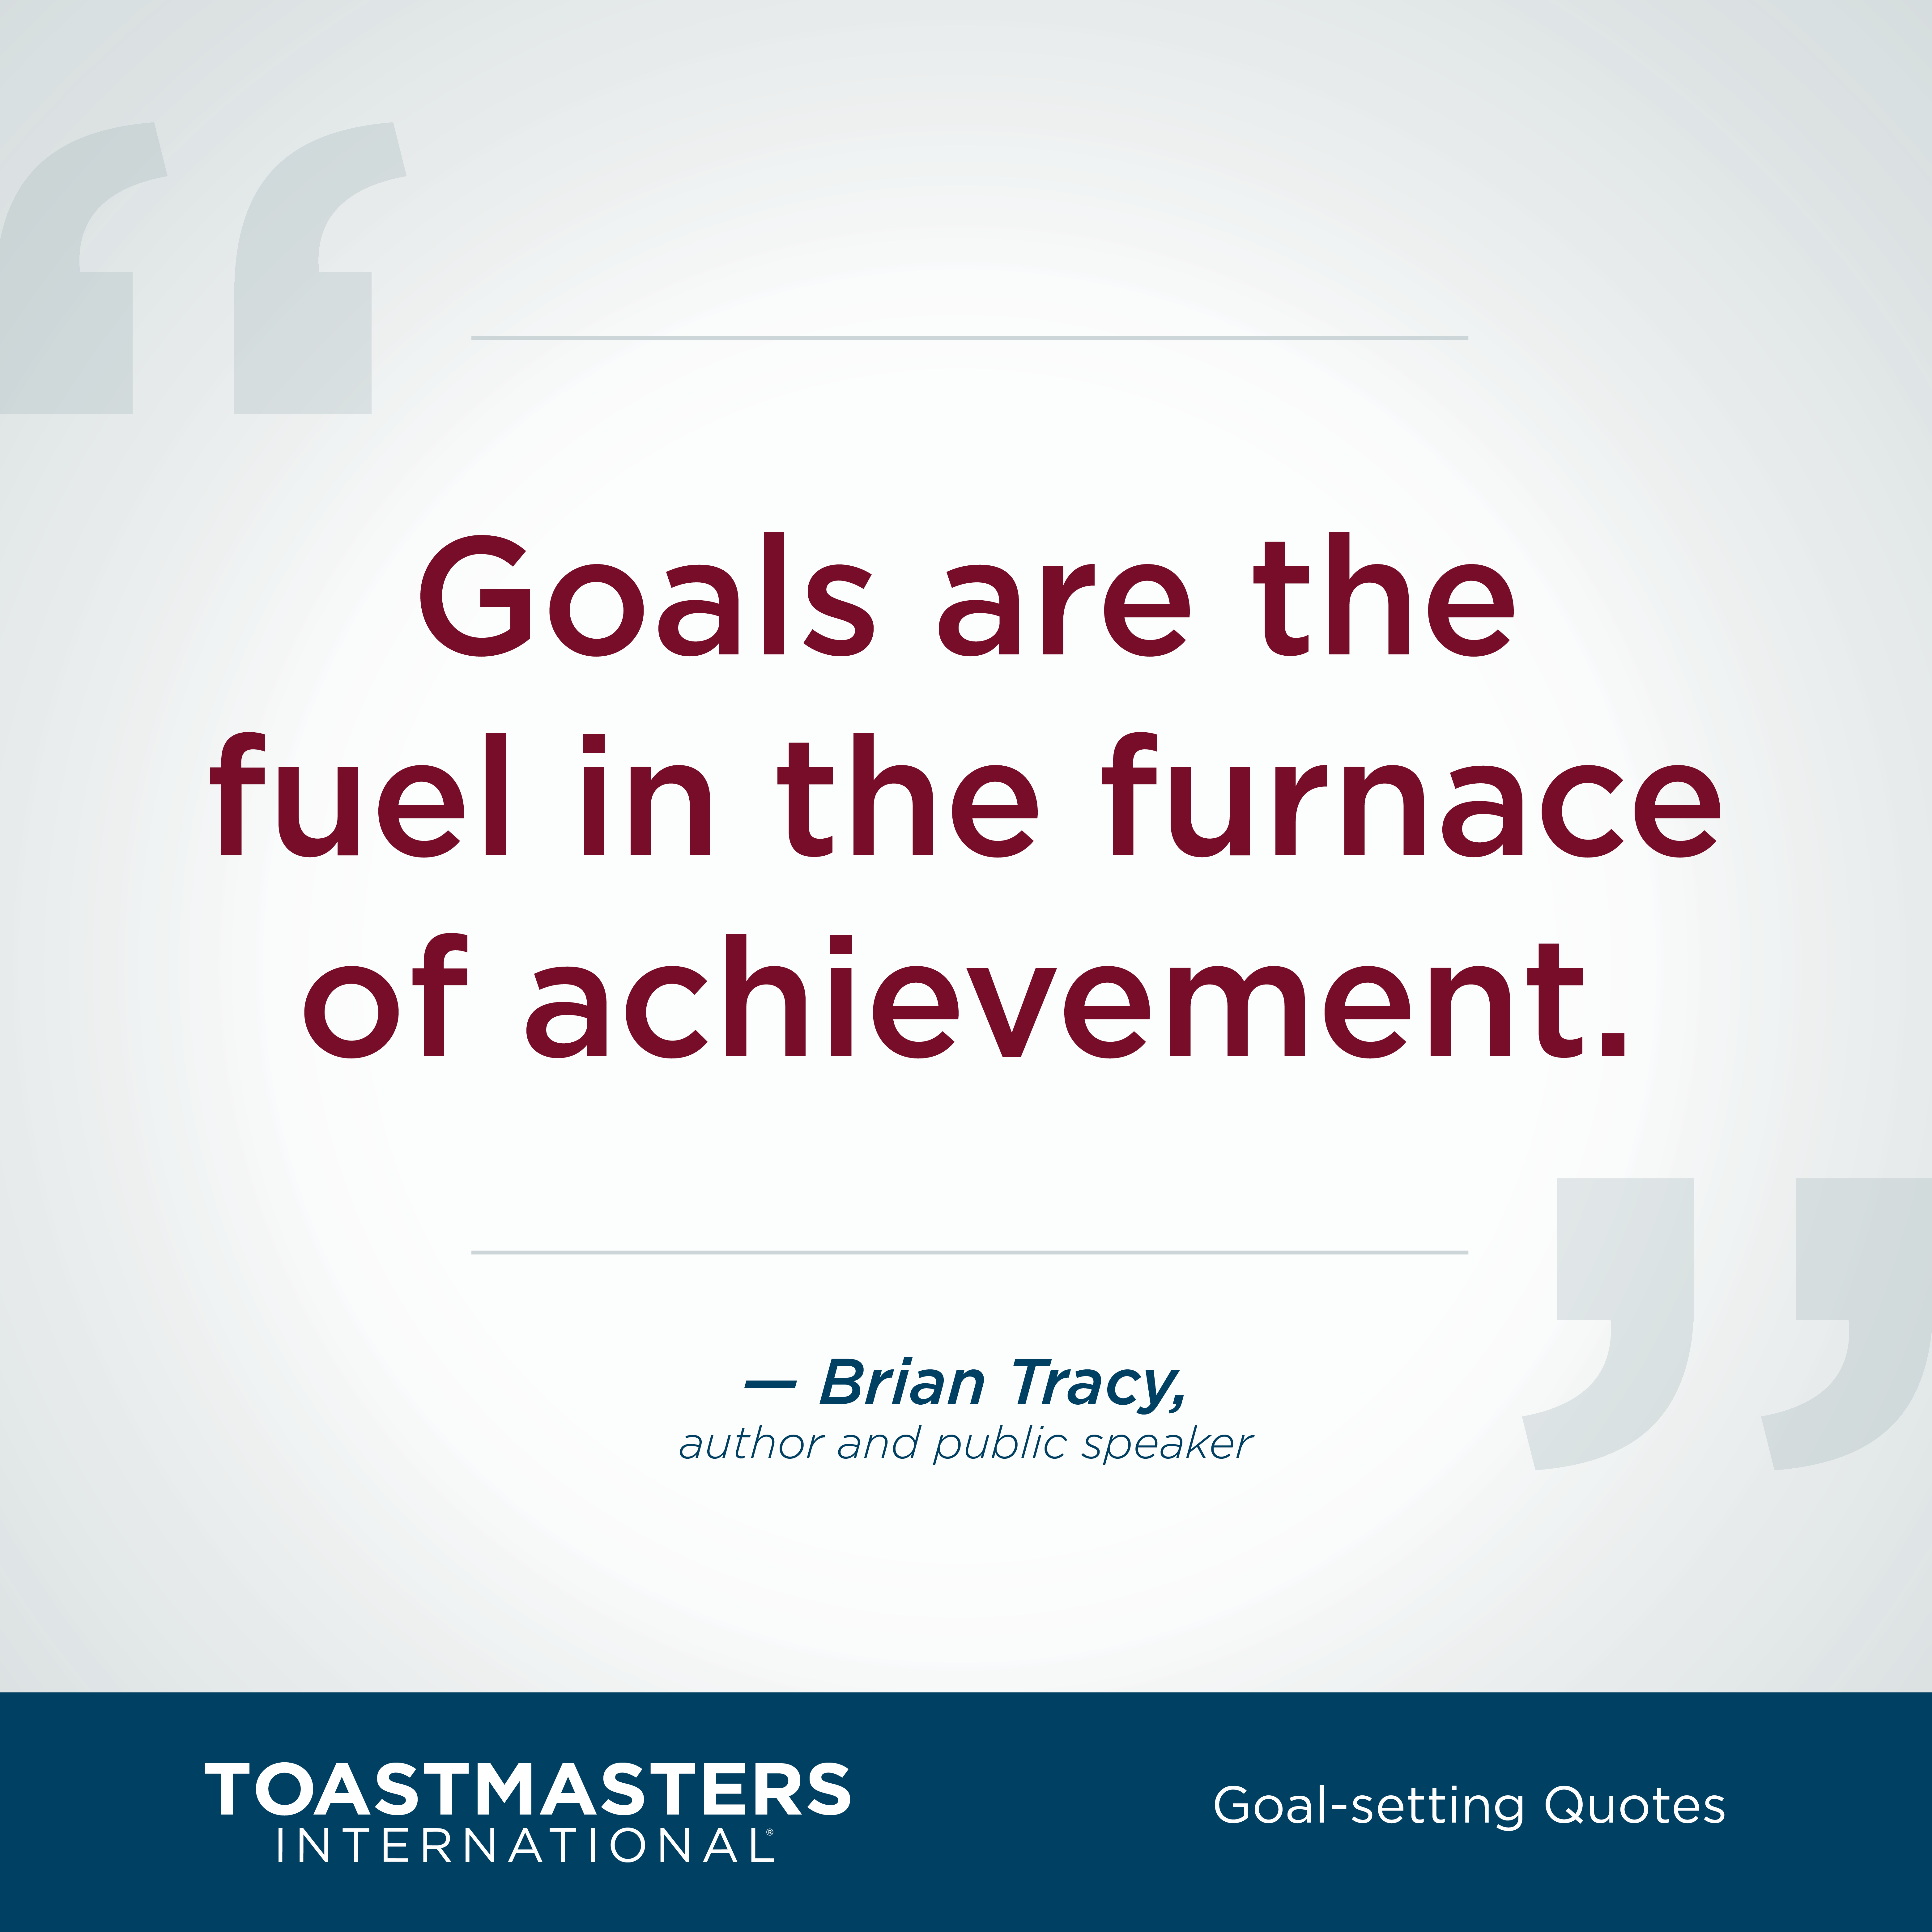 Brian Tracy Goalsetting Quotes